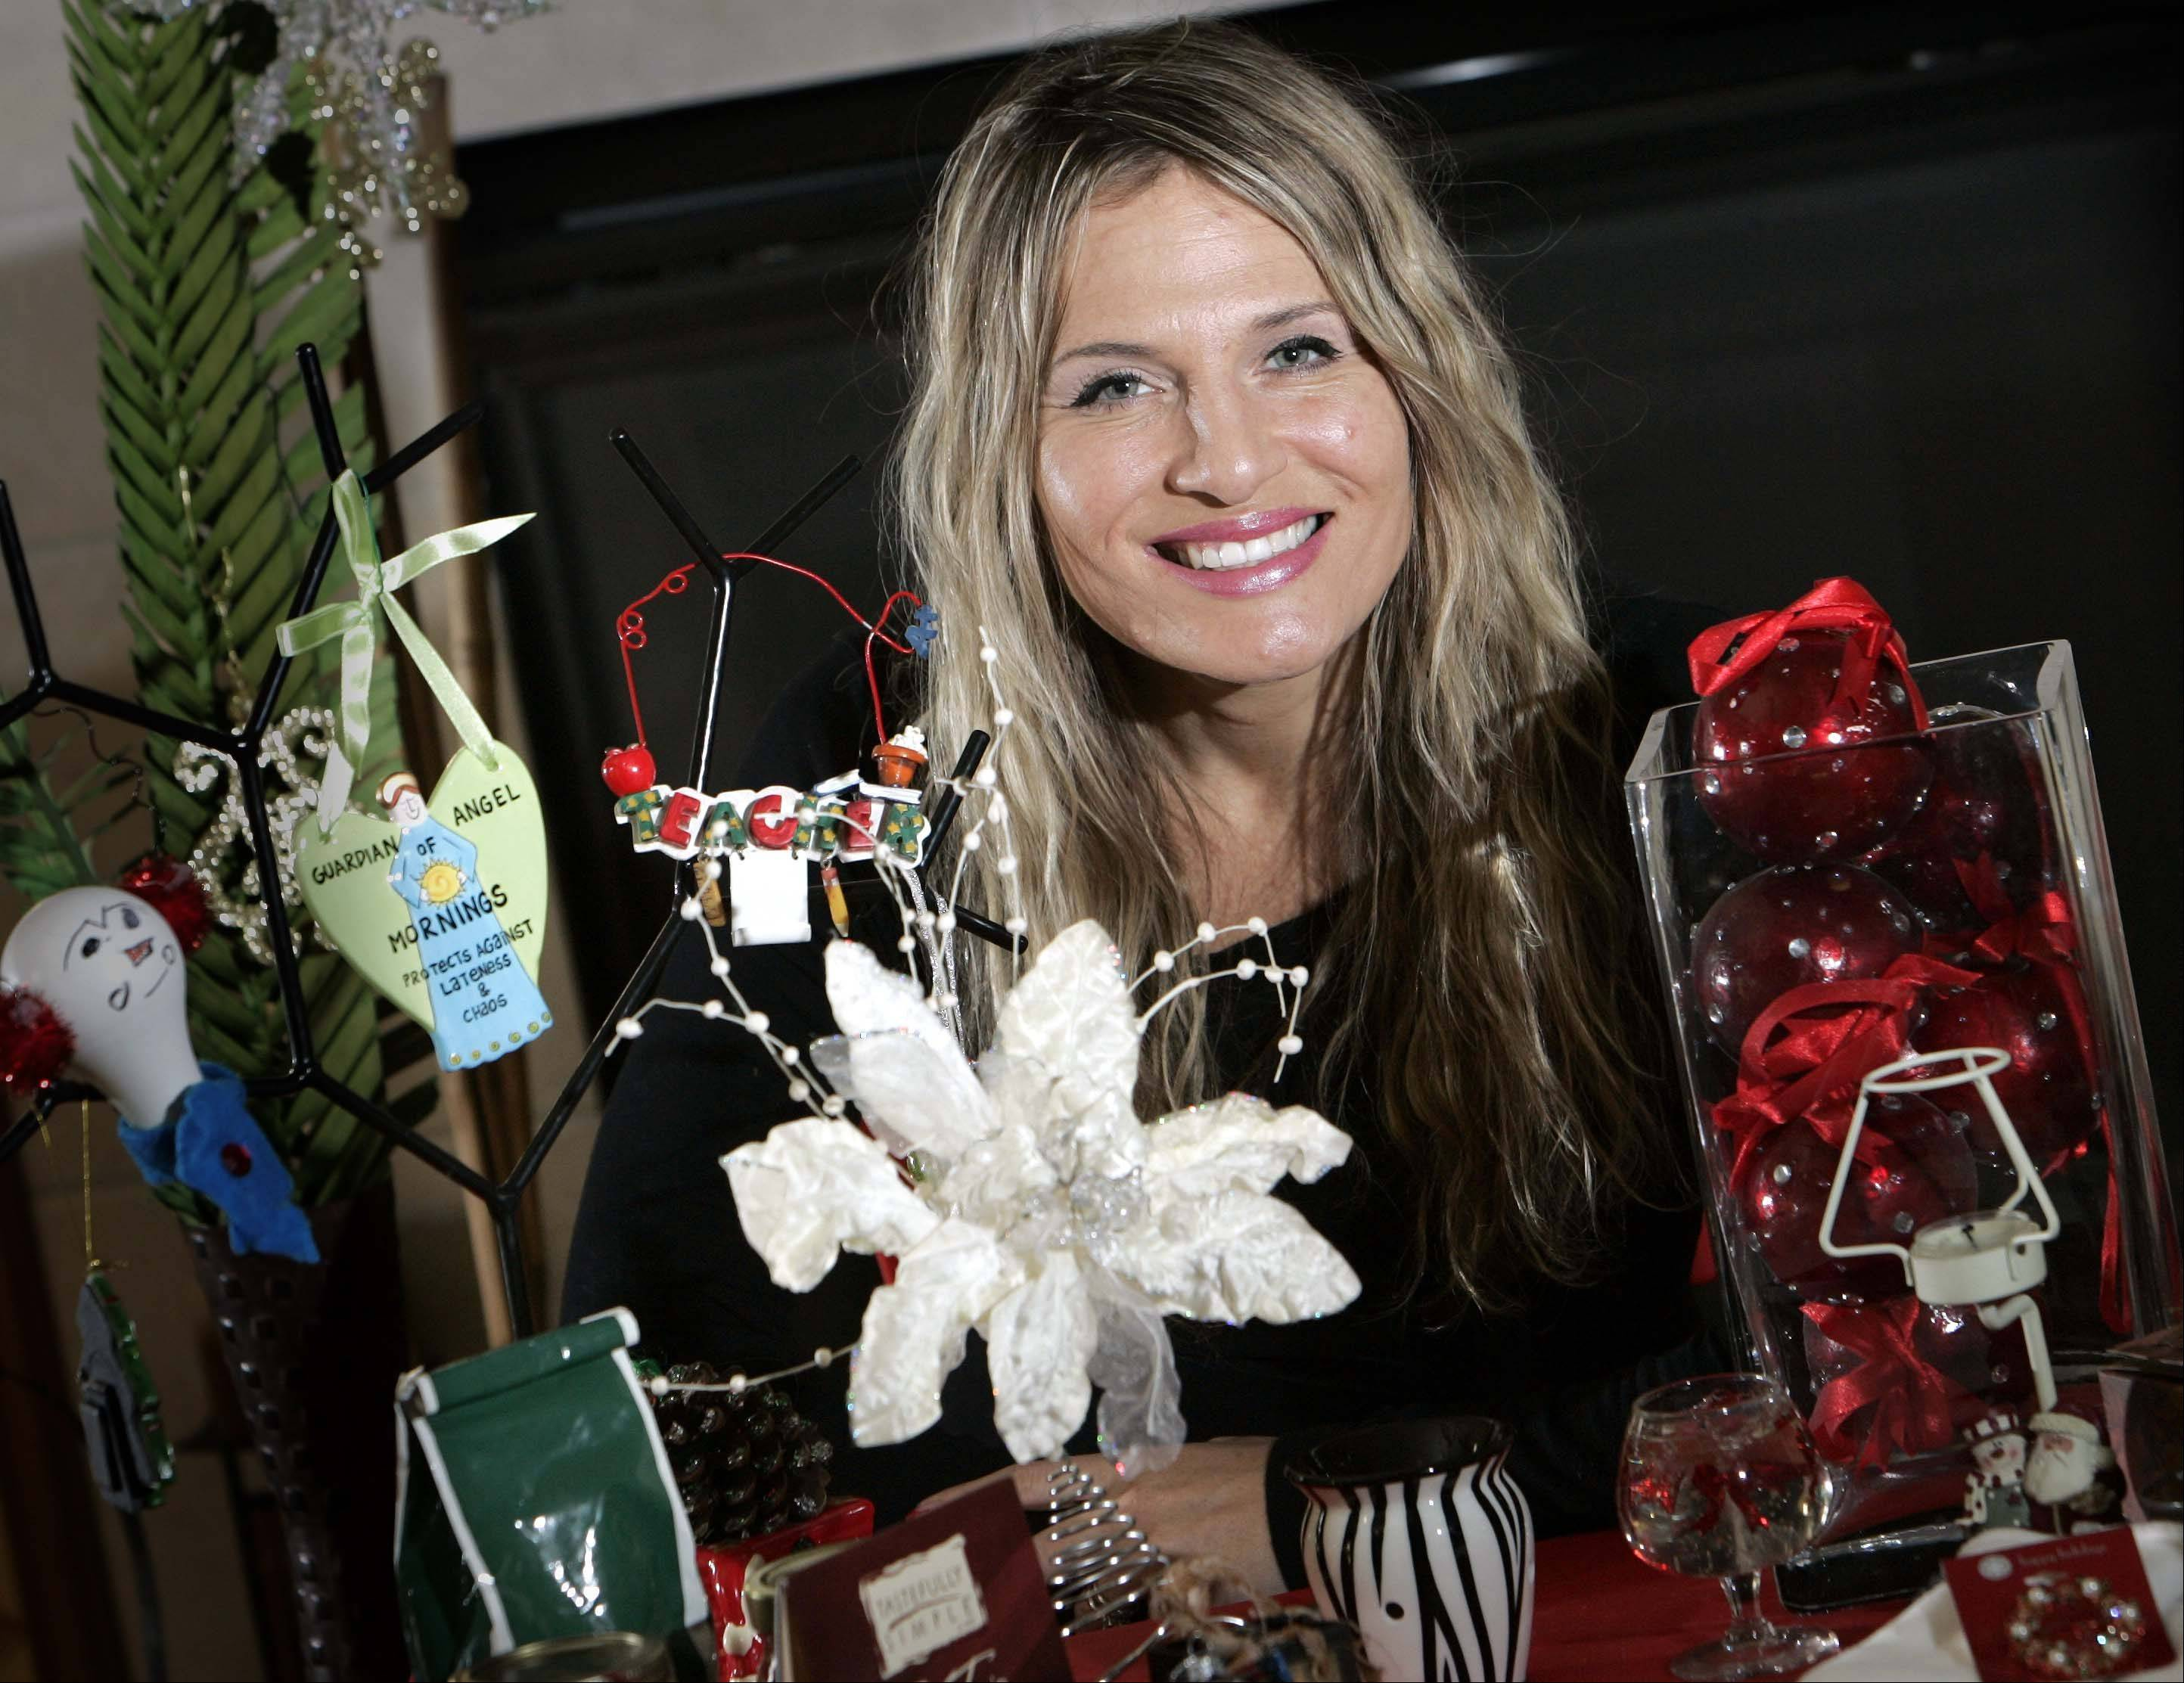 Second-grade Channing Elementary School teacher Tamika Morales poses with just a sampling of the gifts that she has received over her six years as a teacher in Elgin.